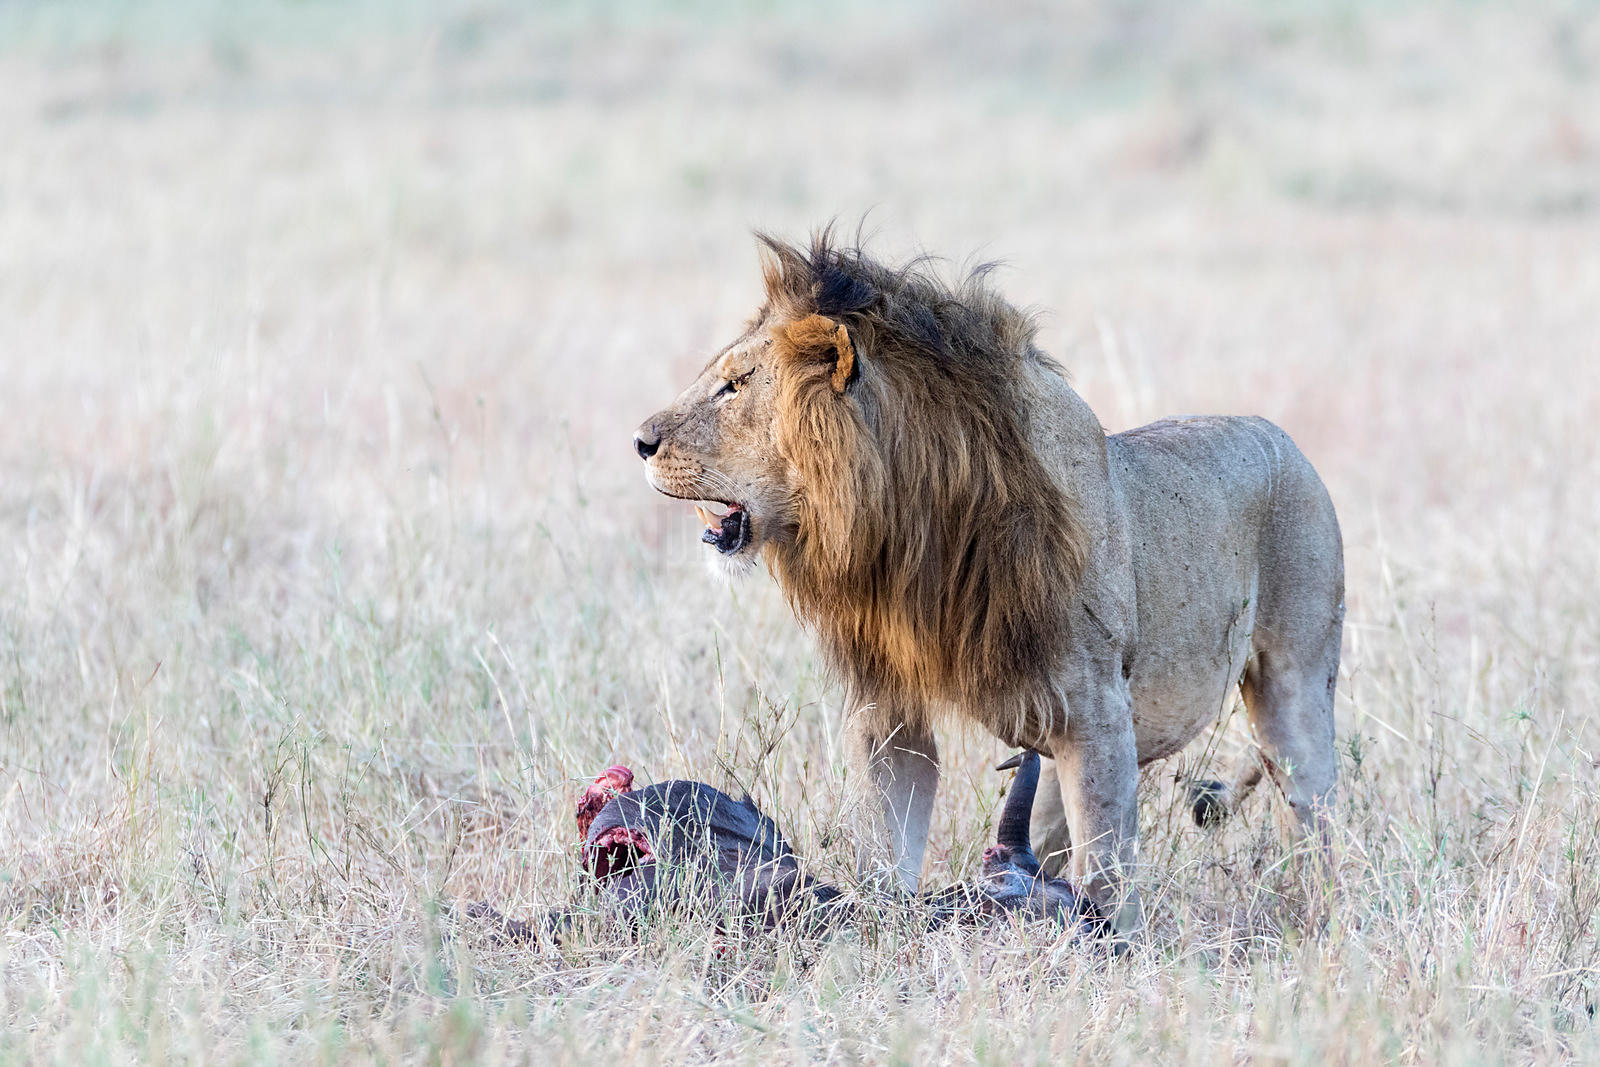 Portrait of a Male Lion at a Wildebeest Carcass